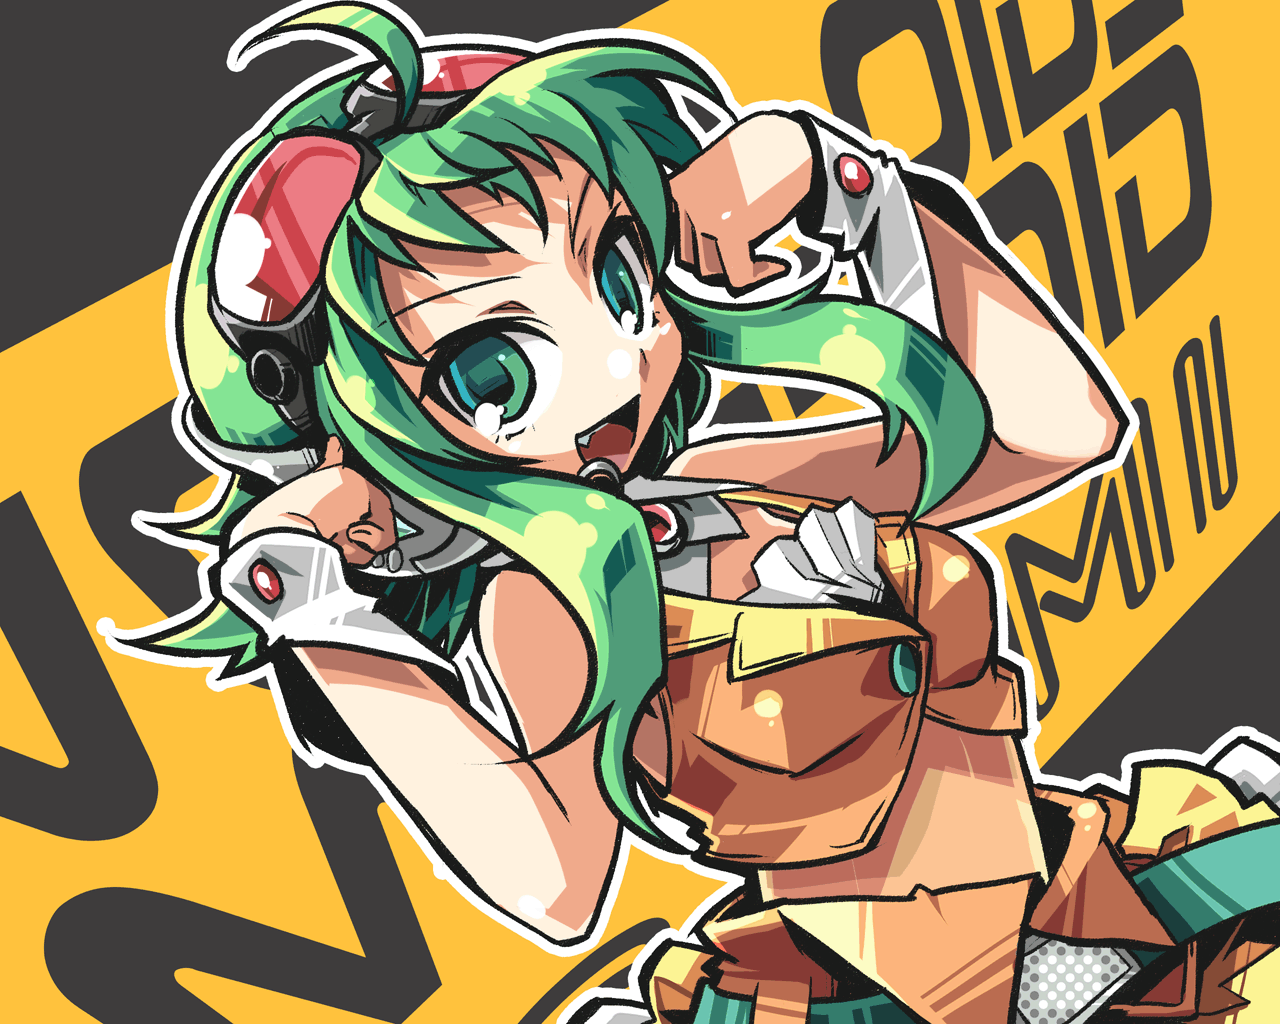 090620-gumi.png